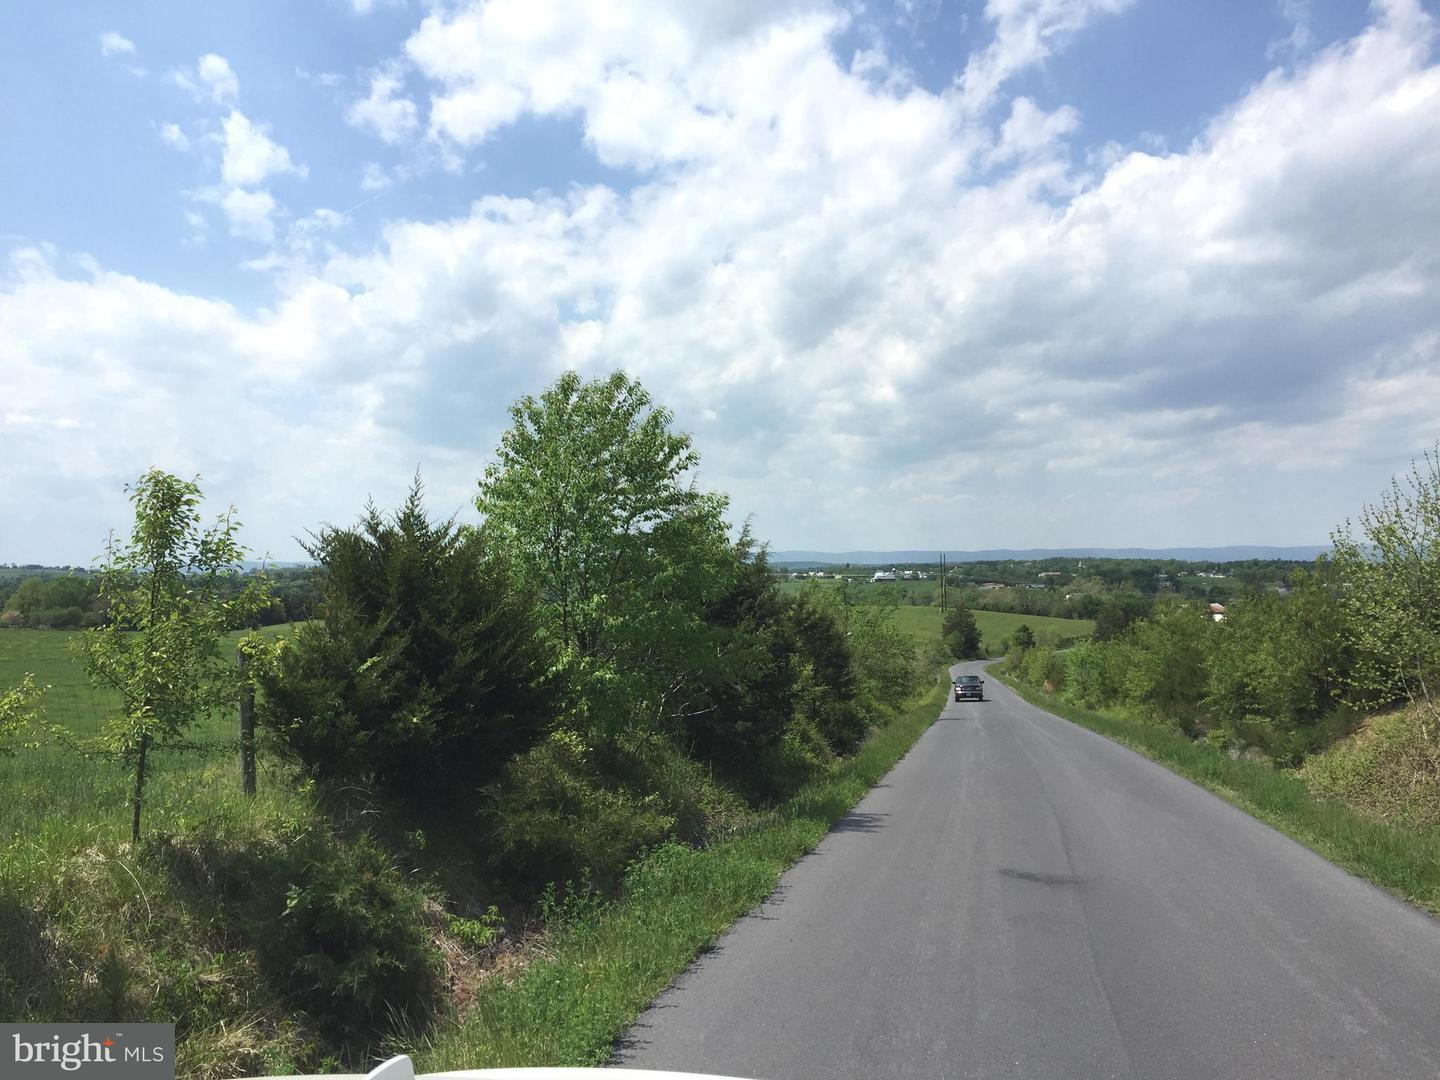 Land for Sale at 2068 Smith Creek Rd New Market, Virginia 22844 United States